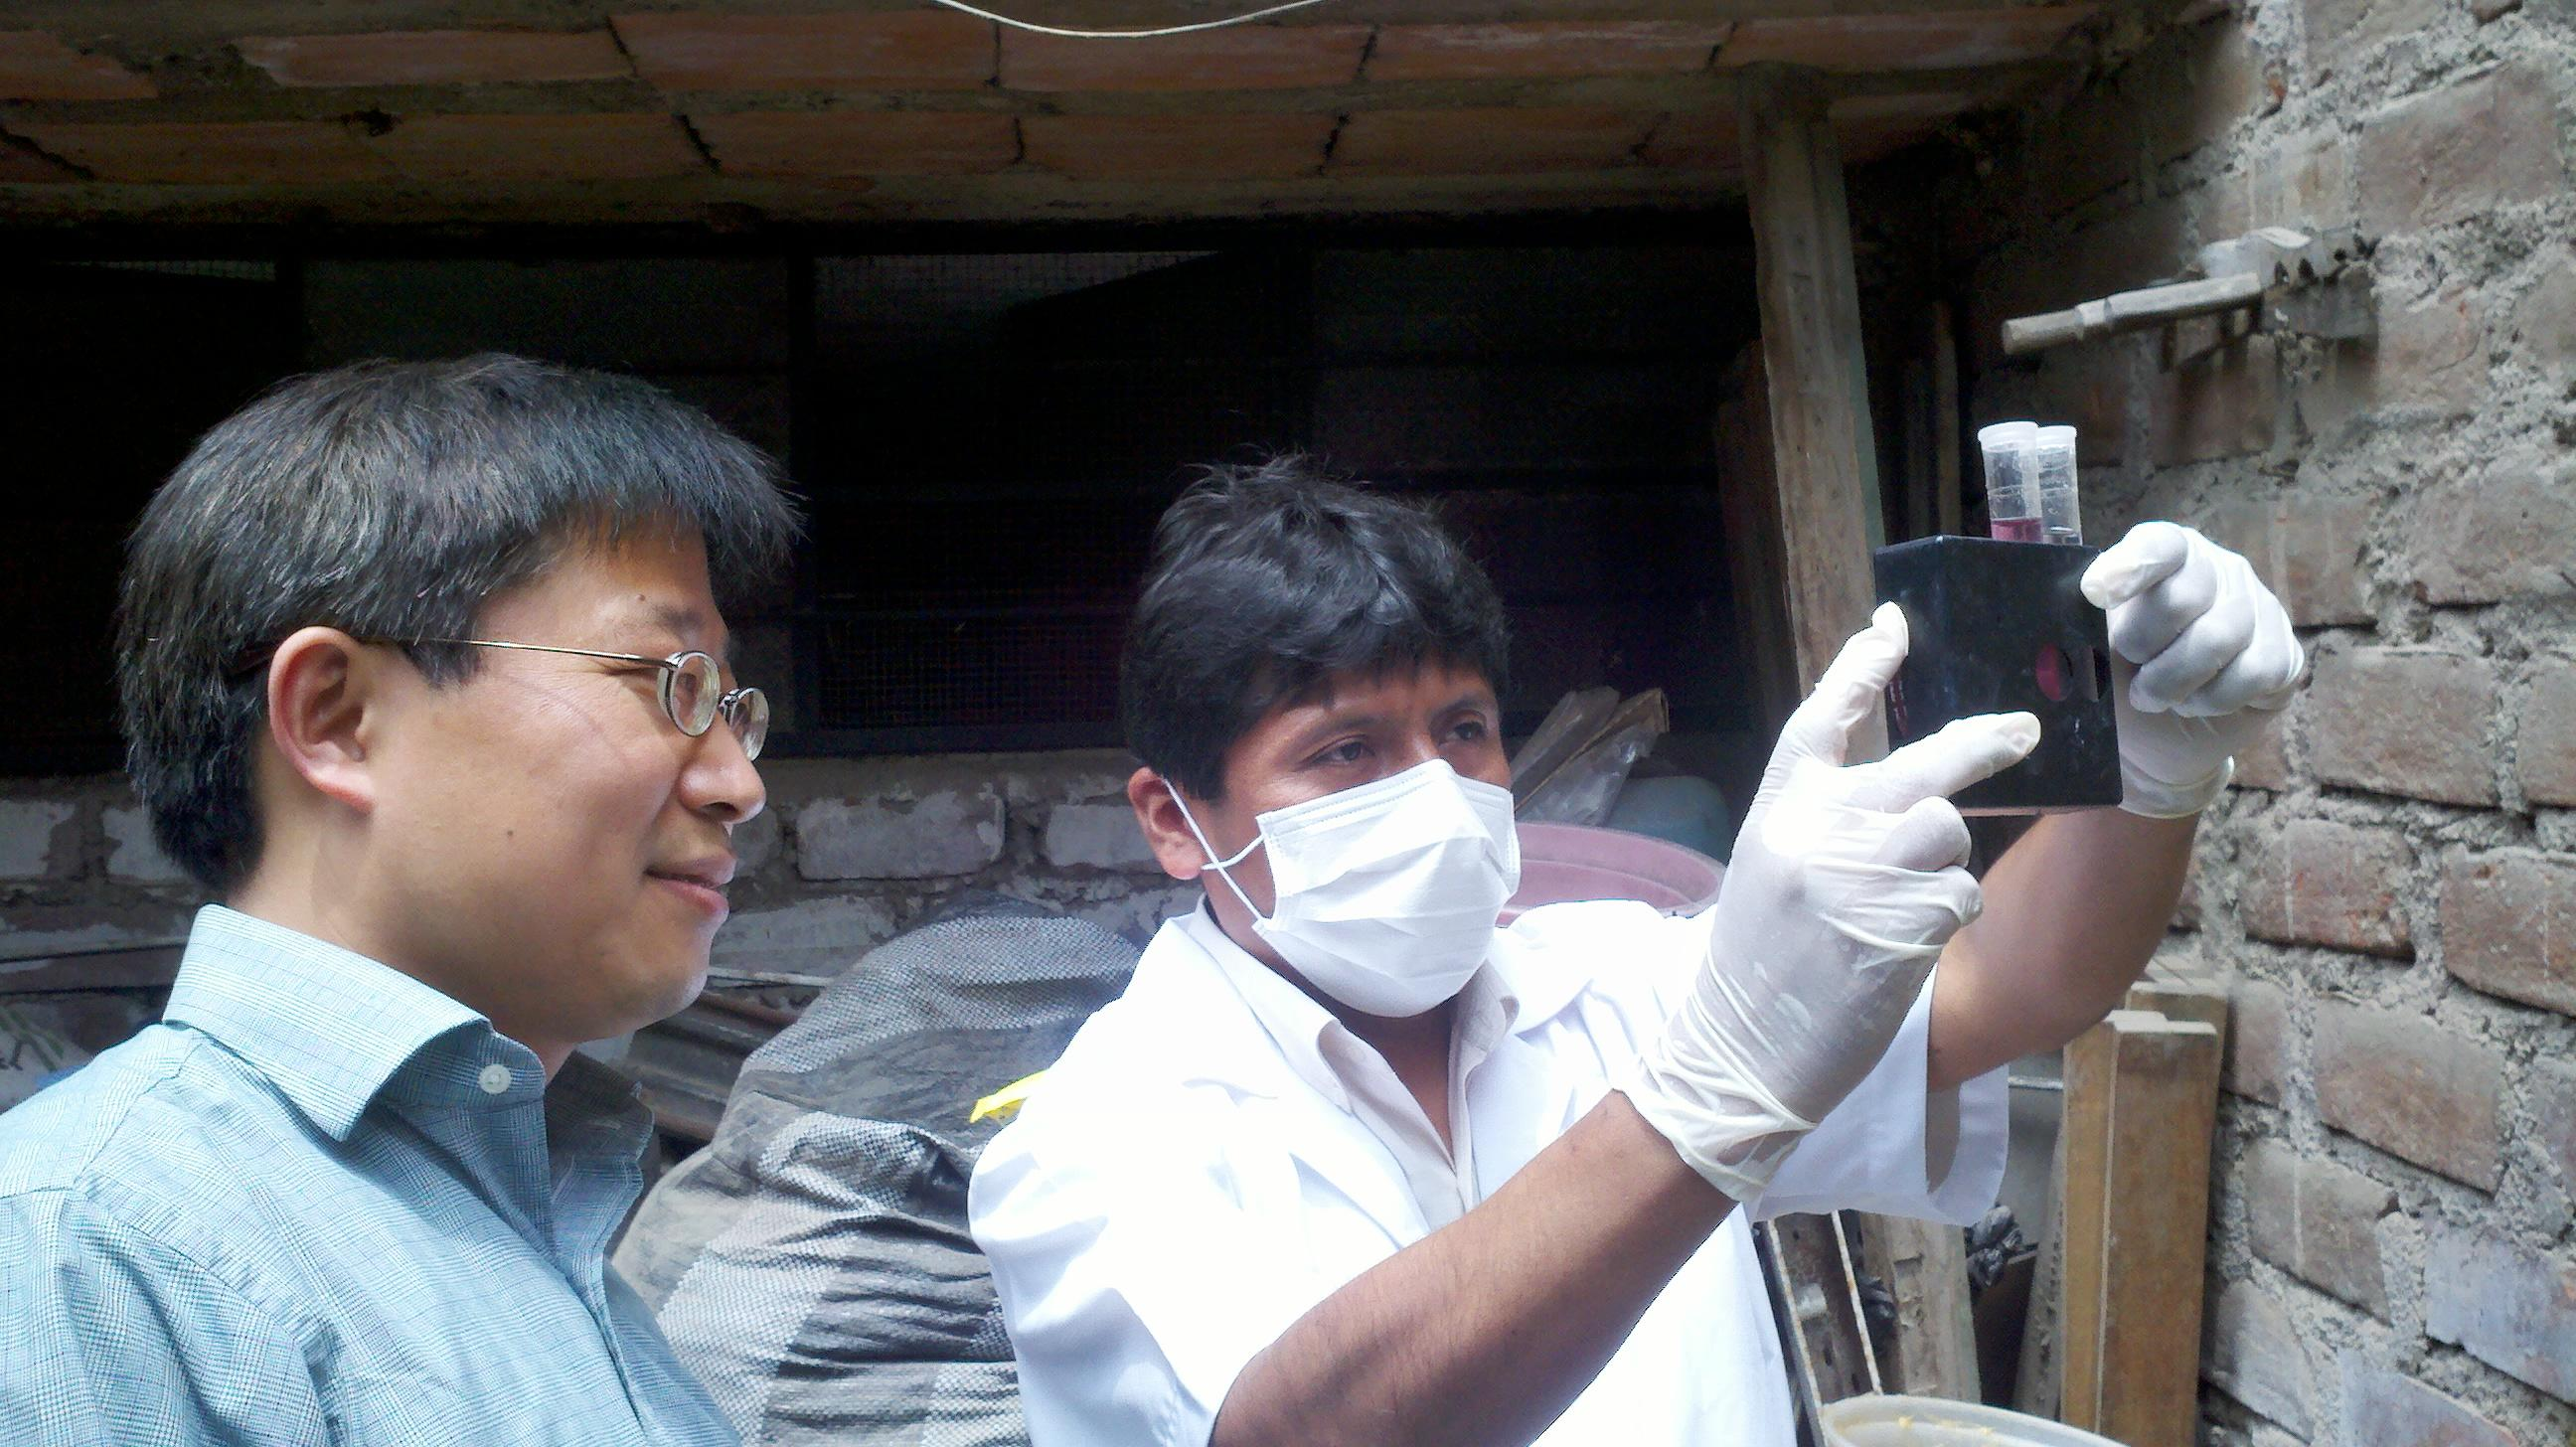 Chuanwu Xi studies biofilms, water quality and treatment and human health around the world, including in Peru, Qatar, China and the US.